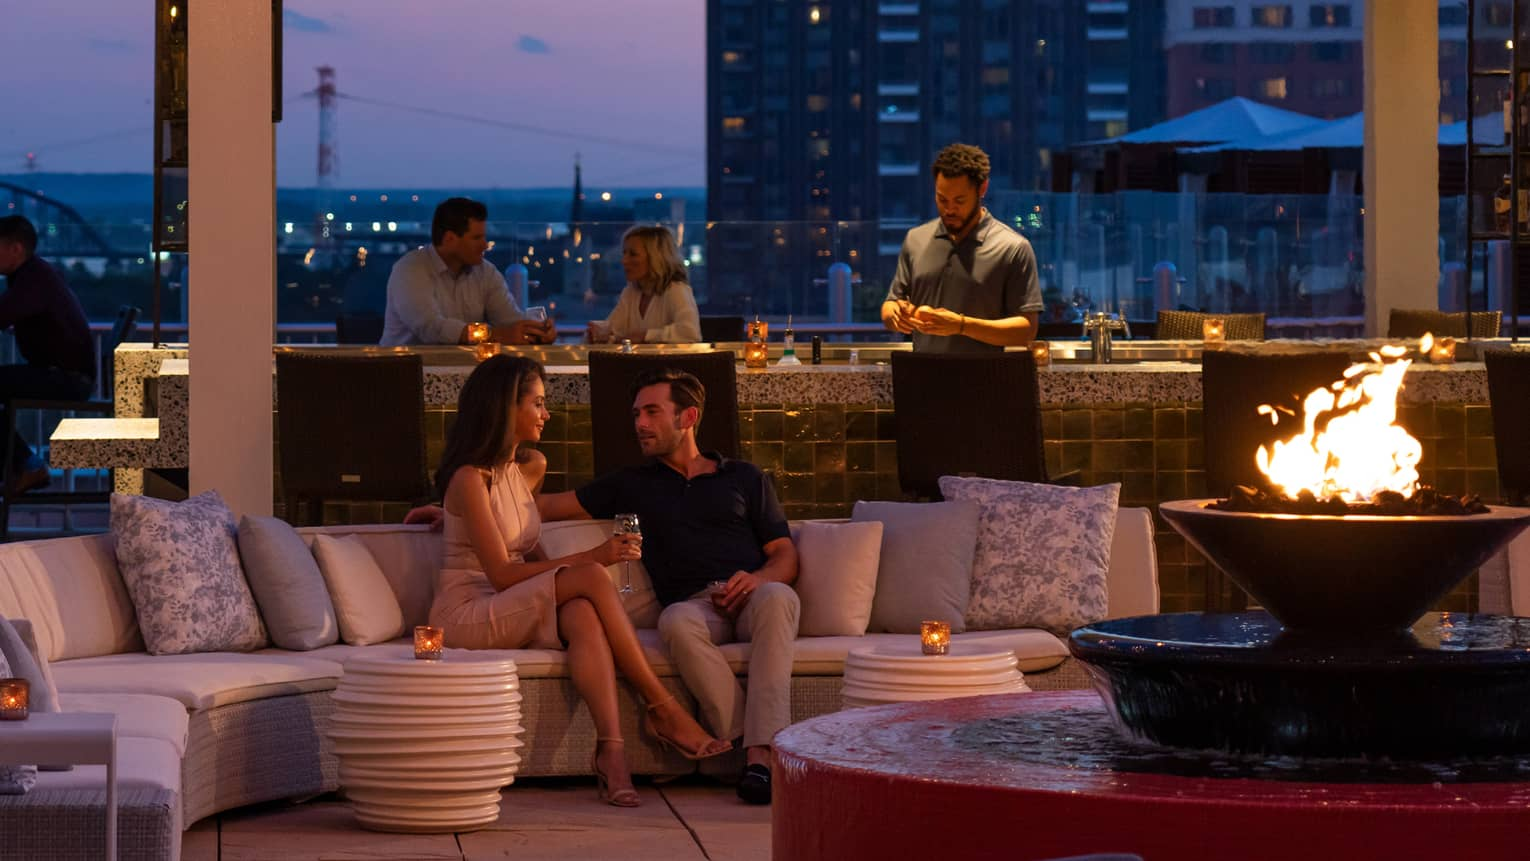 The sky is dark beyond the cinderhouse rooftop bar – furnished with a curved sectional, fire pit, hanging lights and people socialize